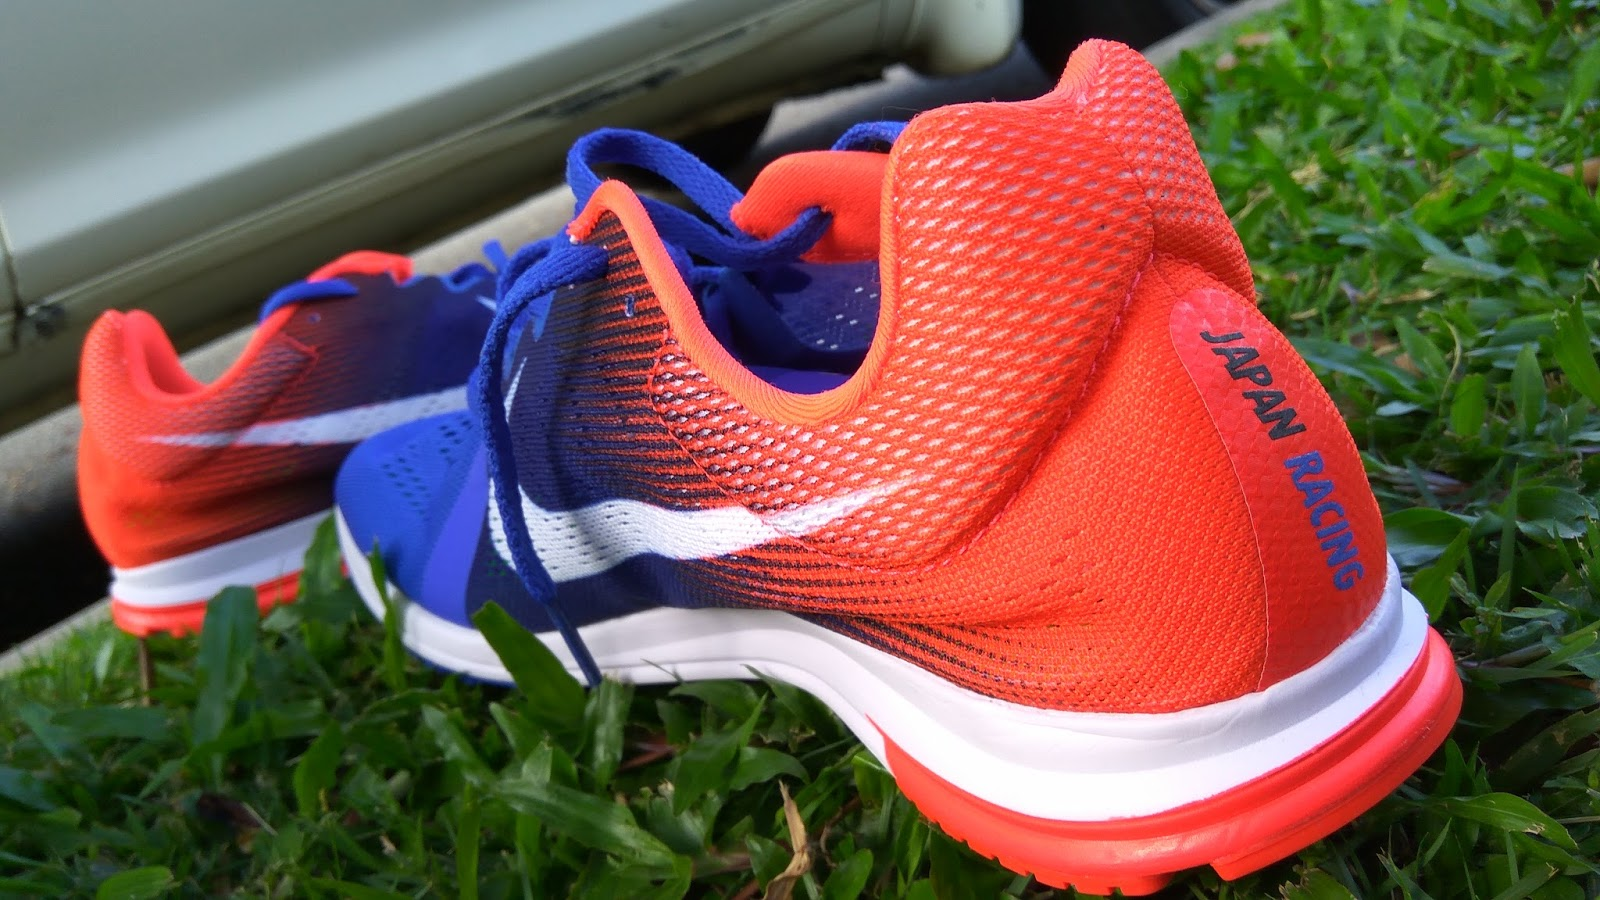 No Names Mentioned: Product Review - Nike Zoom Streak LT3